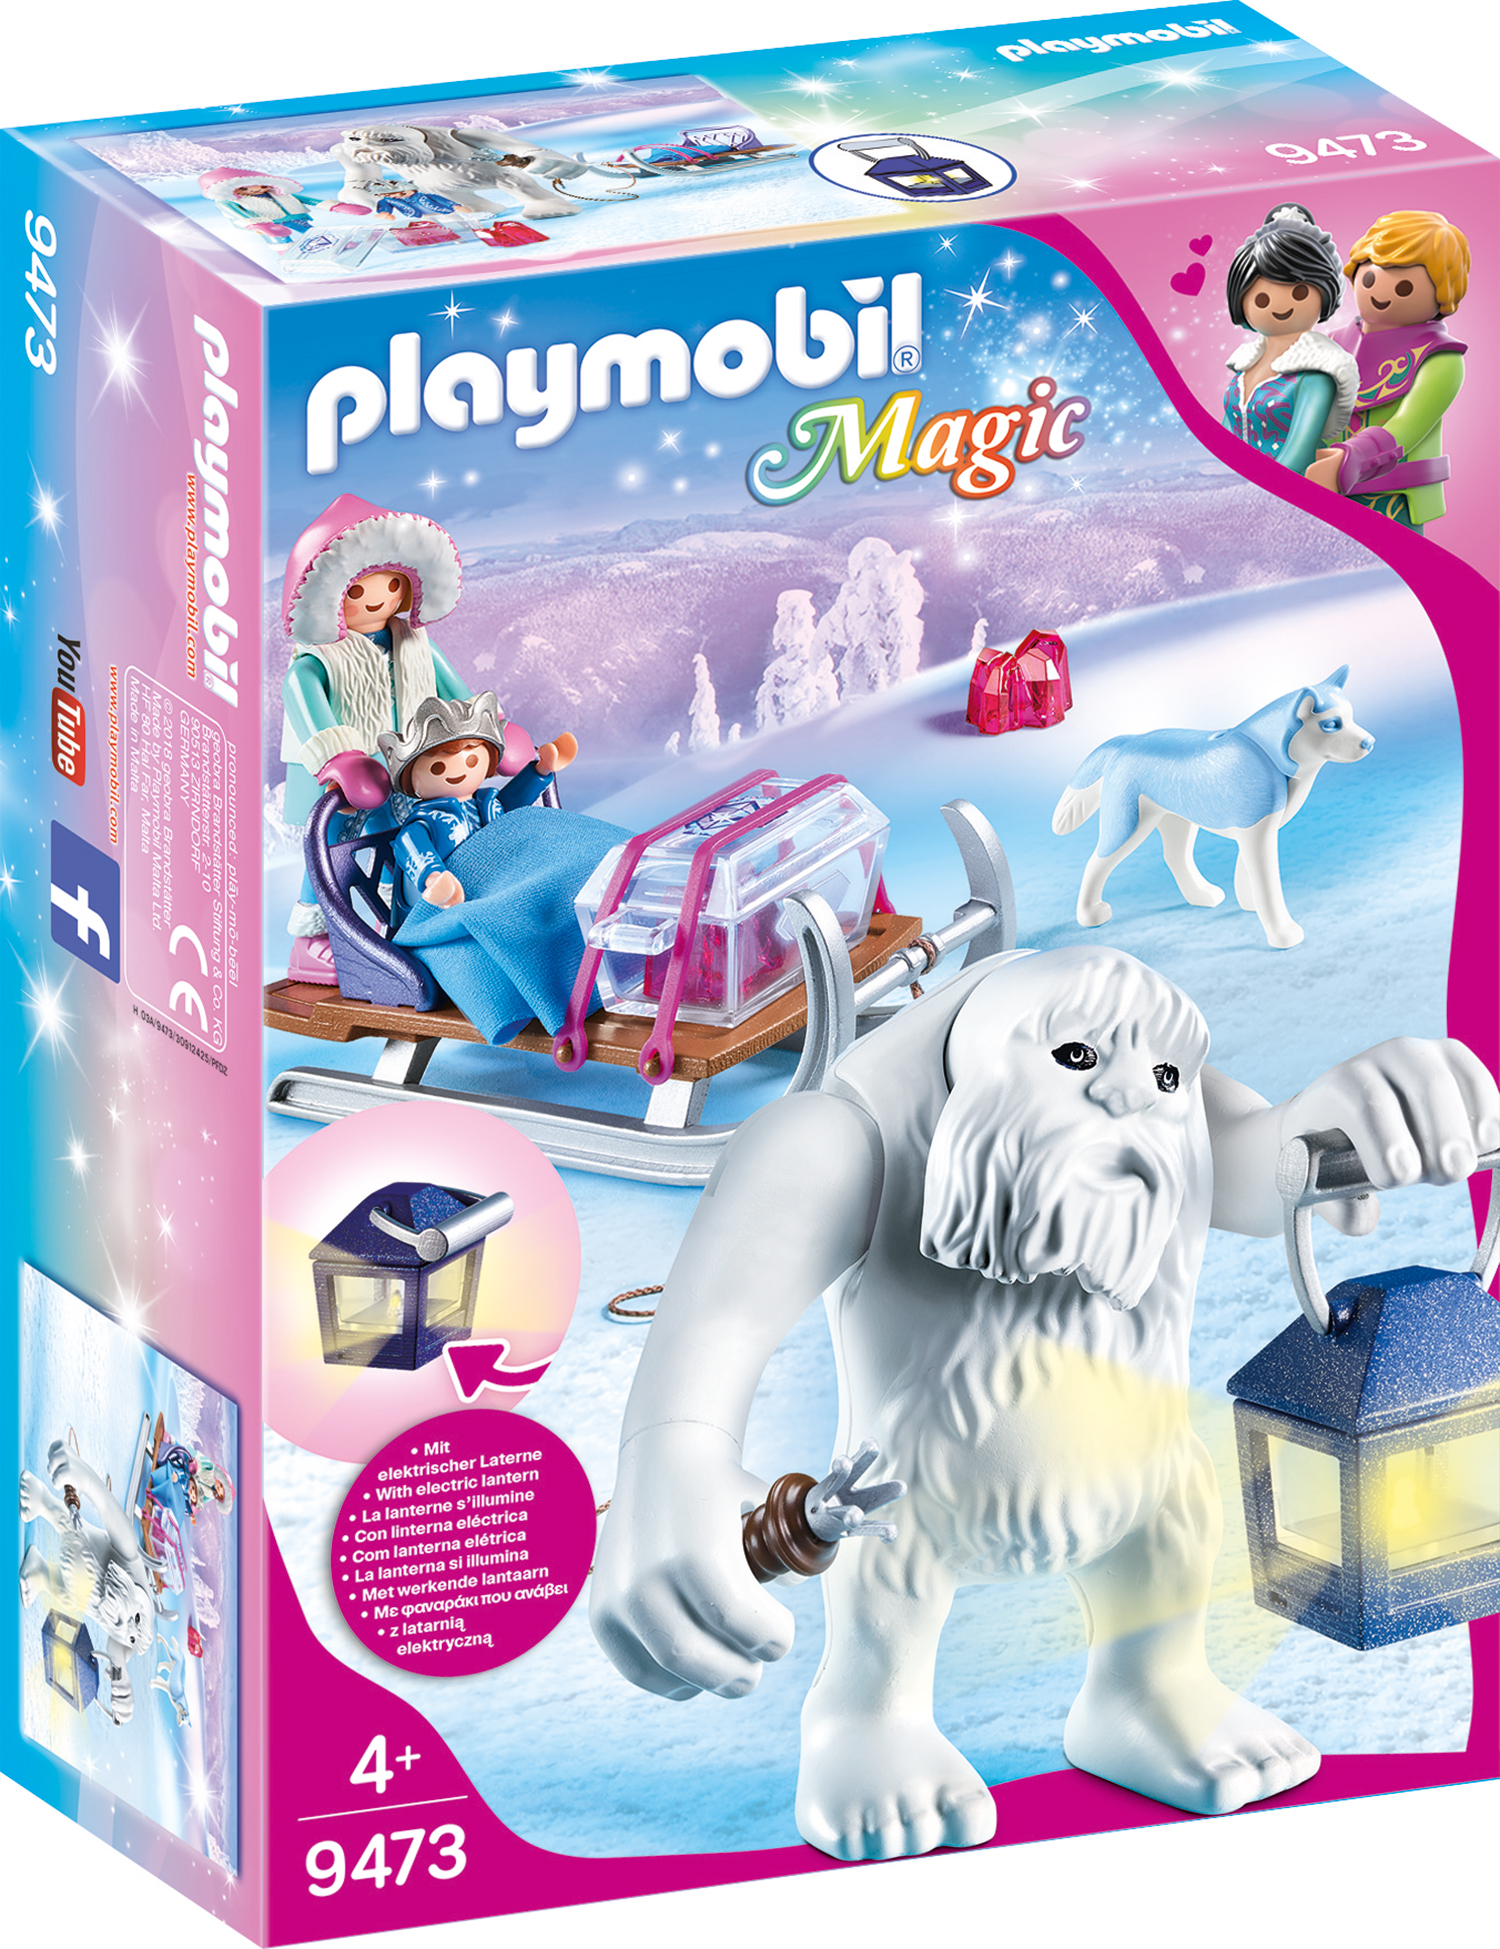 Yeti cu sanie si figurine playmobil magic